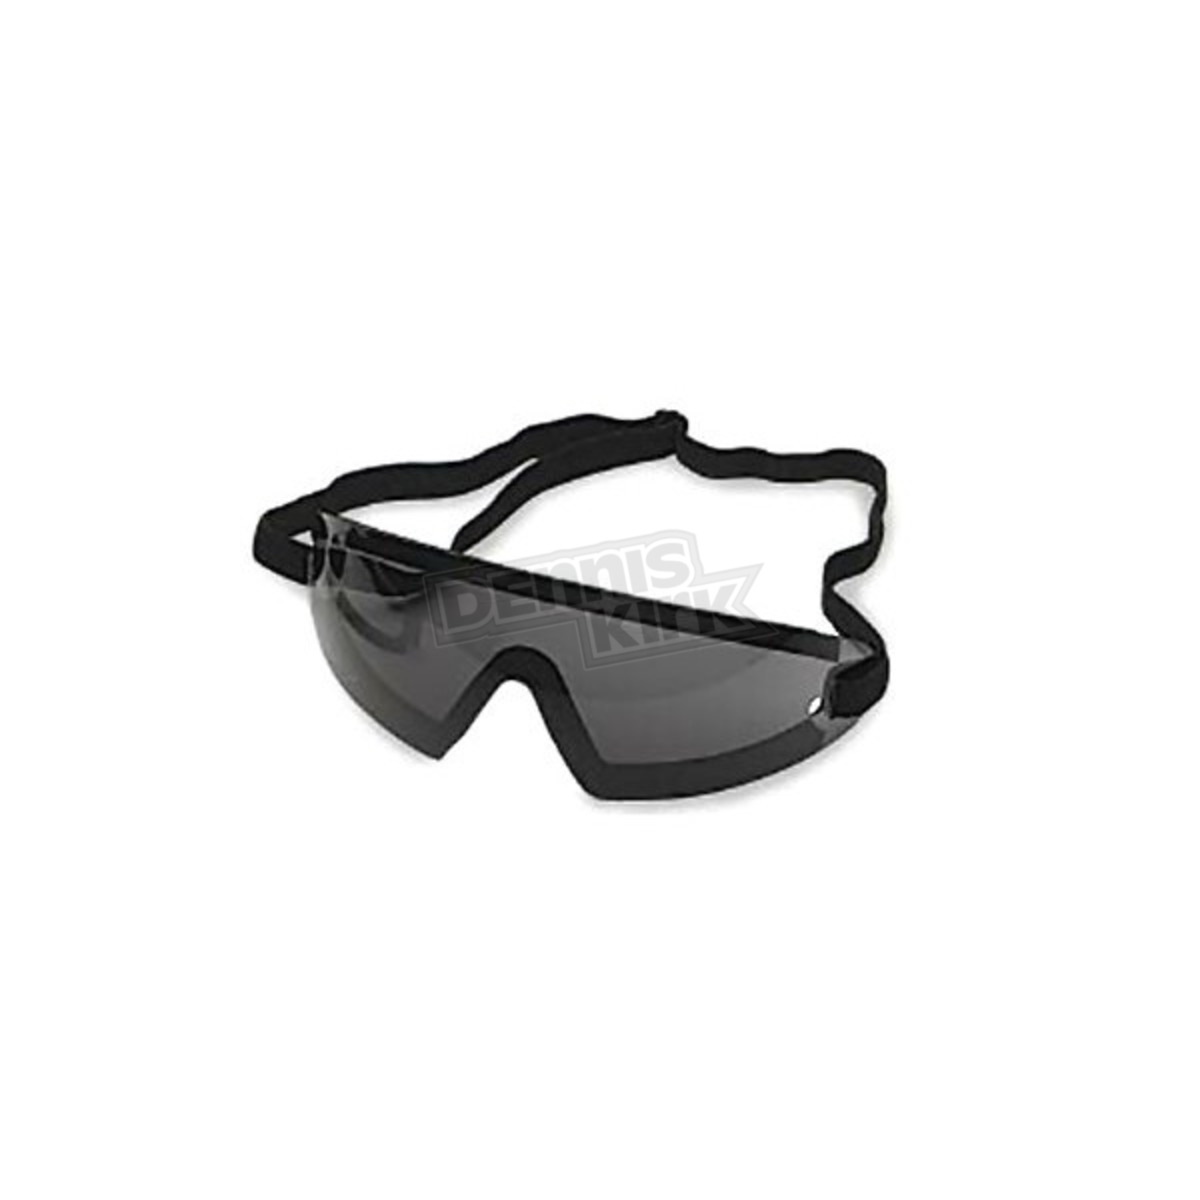 627c6b8e0b4 Bobster Wrap Goggles w Smoke Lens - BW201 Harley Motorcycle Goldwing ...